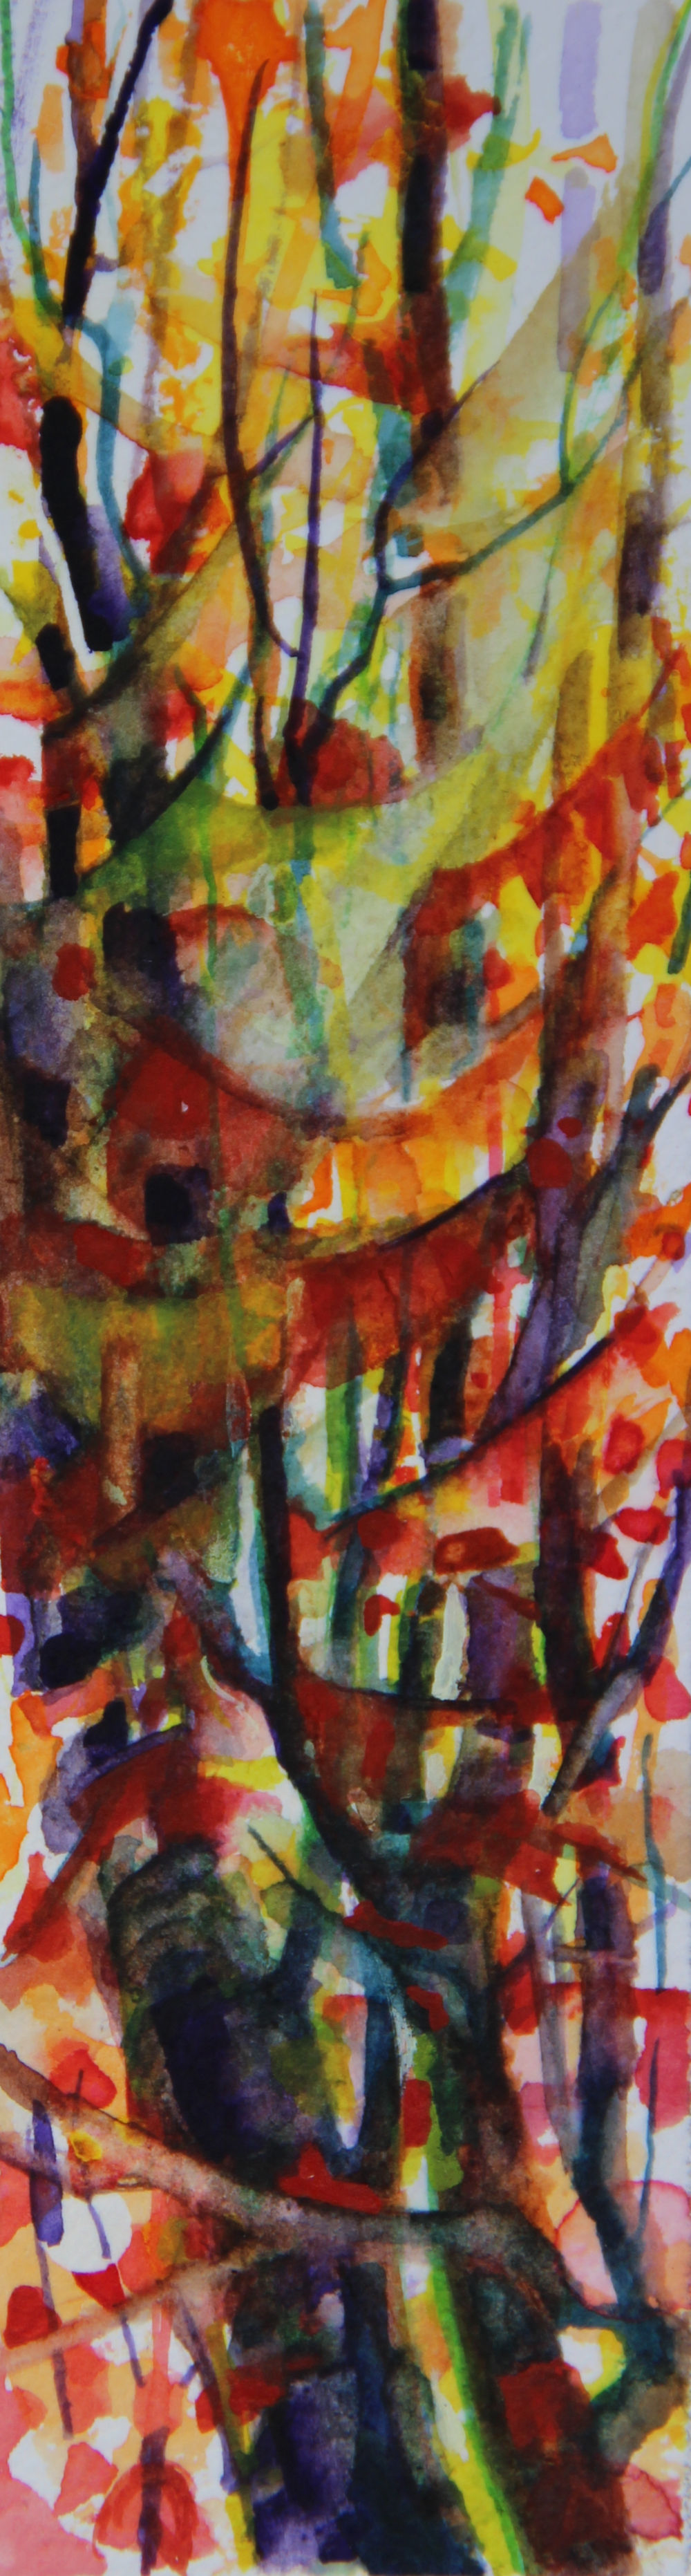 Autumn Forest Scene 11, about 6H x 2W inches watercolors on 140 lb cold pressed